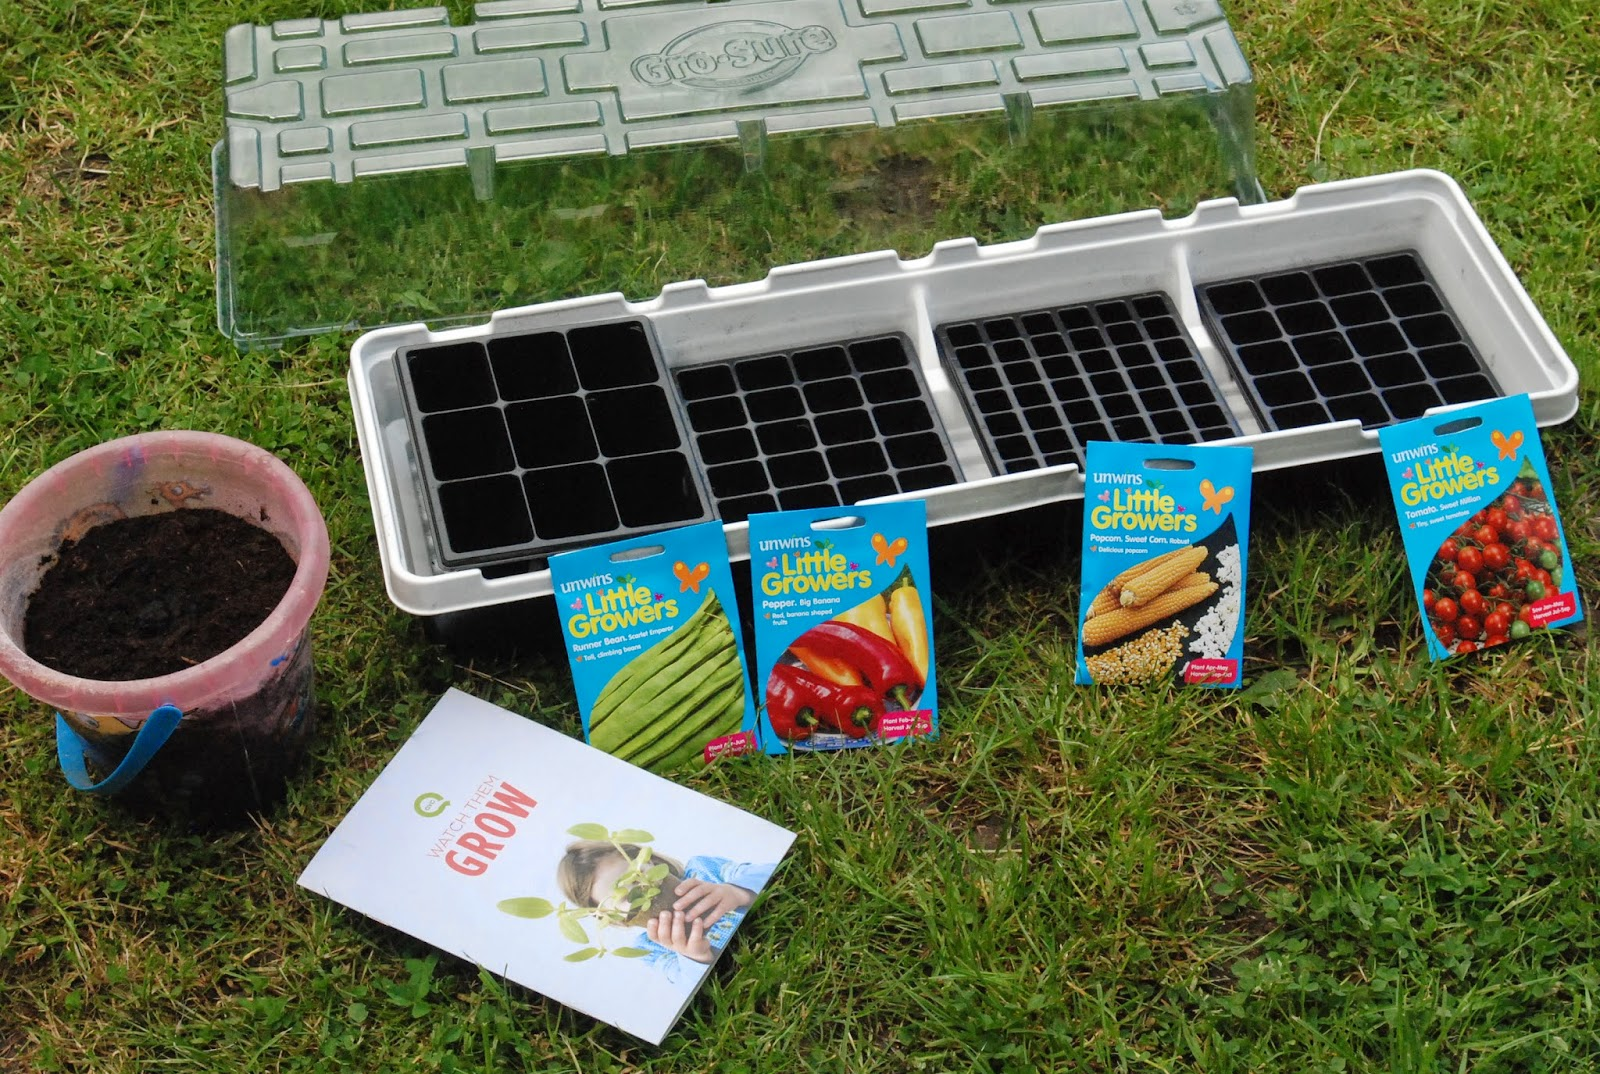 Watch them grow kids gardening kits from qvc for Gardening kit for toddlers